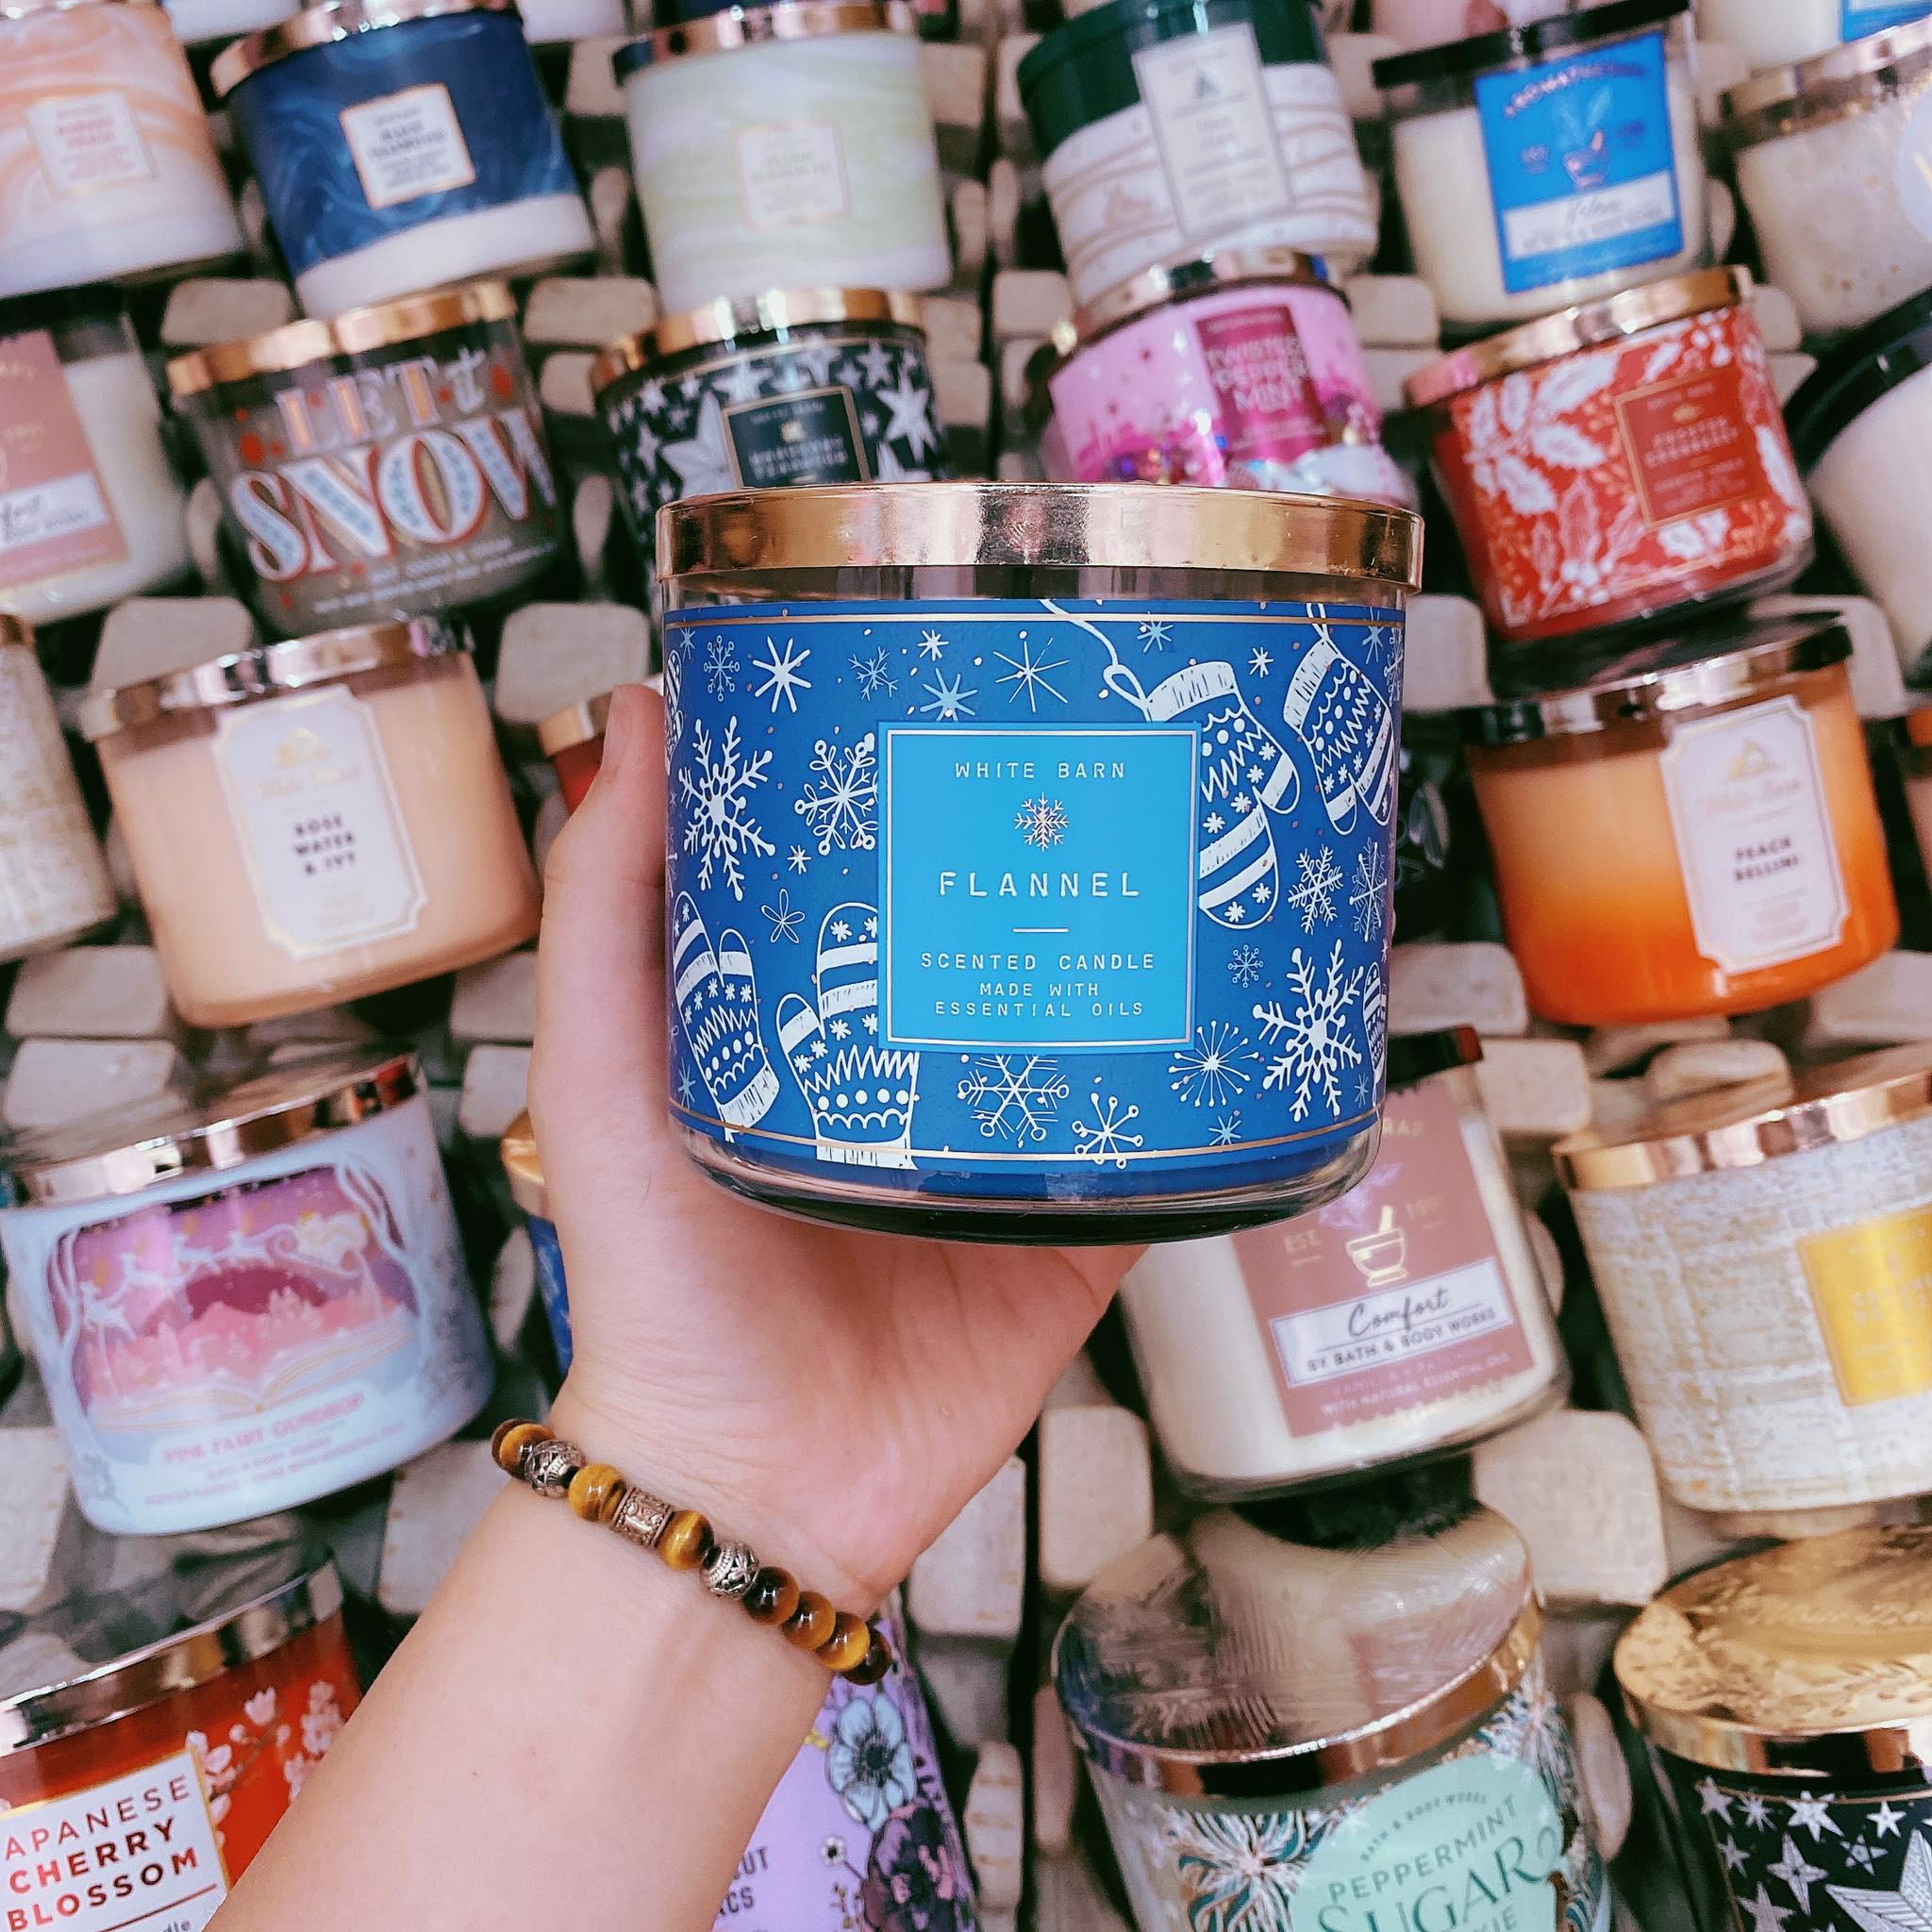 Nến Thơm 3 Bấc Bath & Body Works Flannel Scented Candle